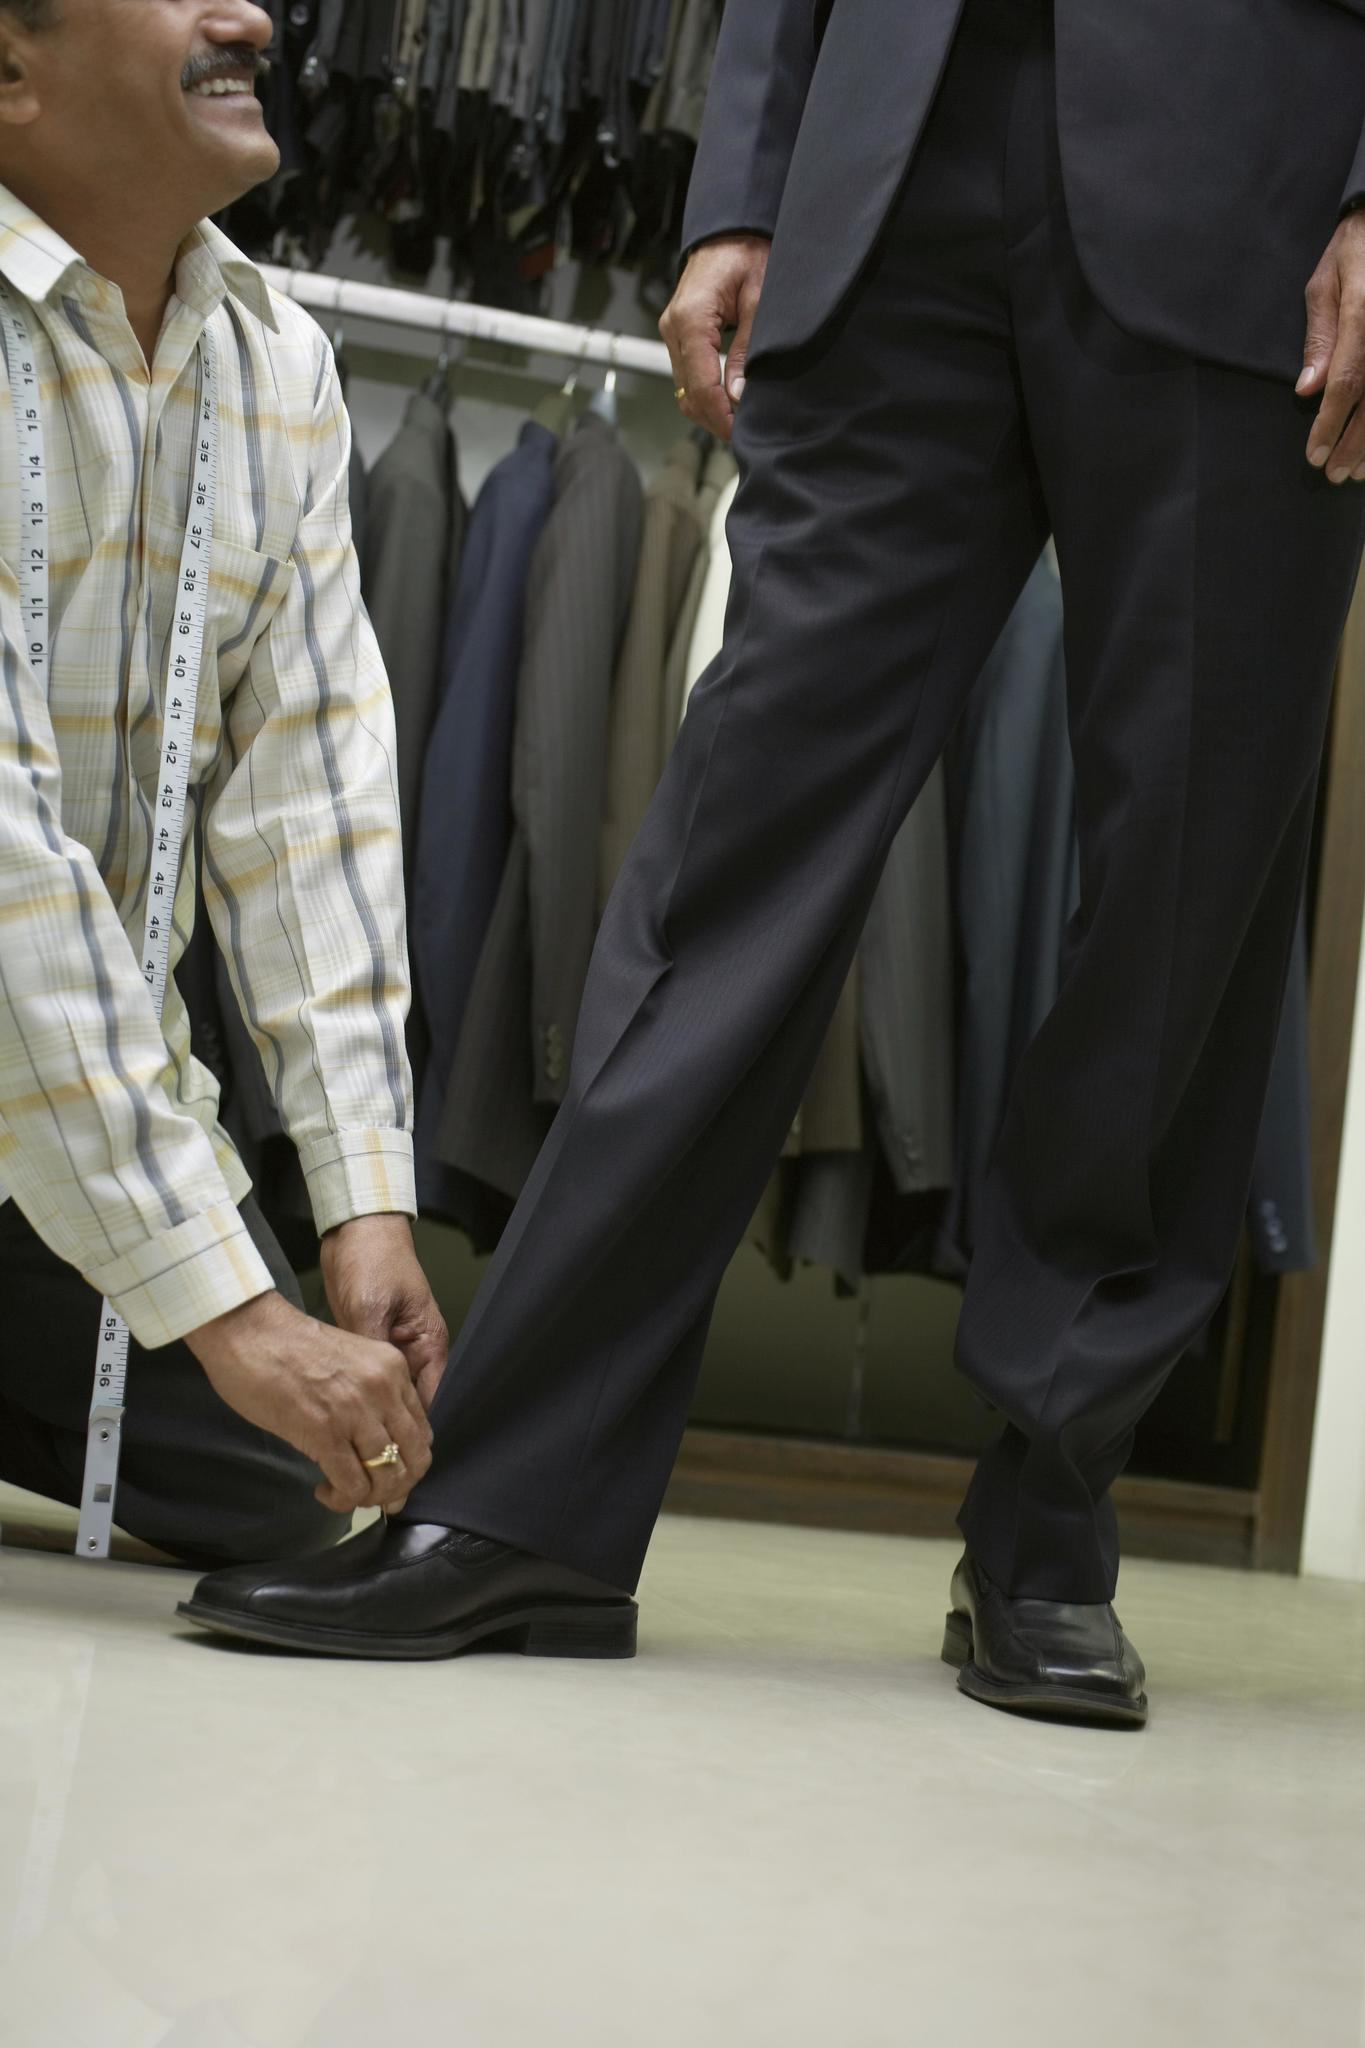 Clothing Options For Big And Tall Men In Lehigh Valley To